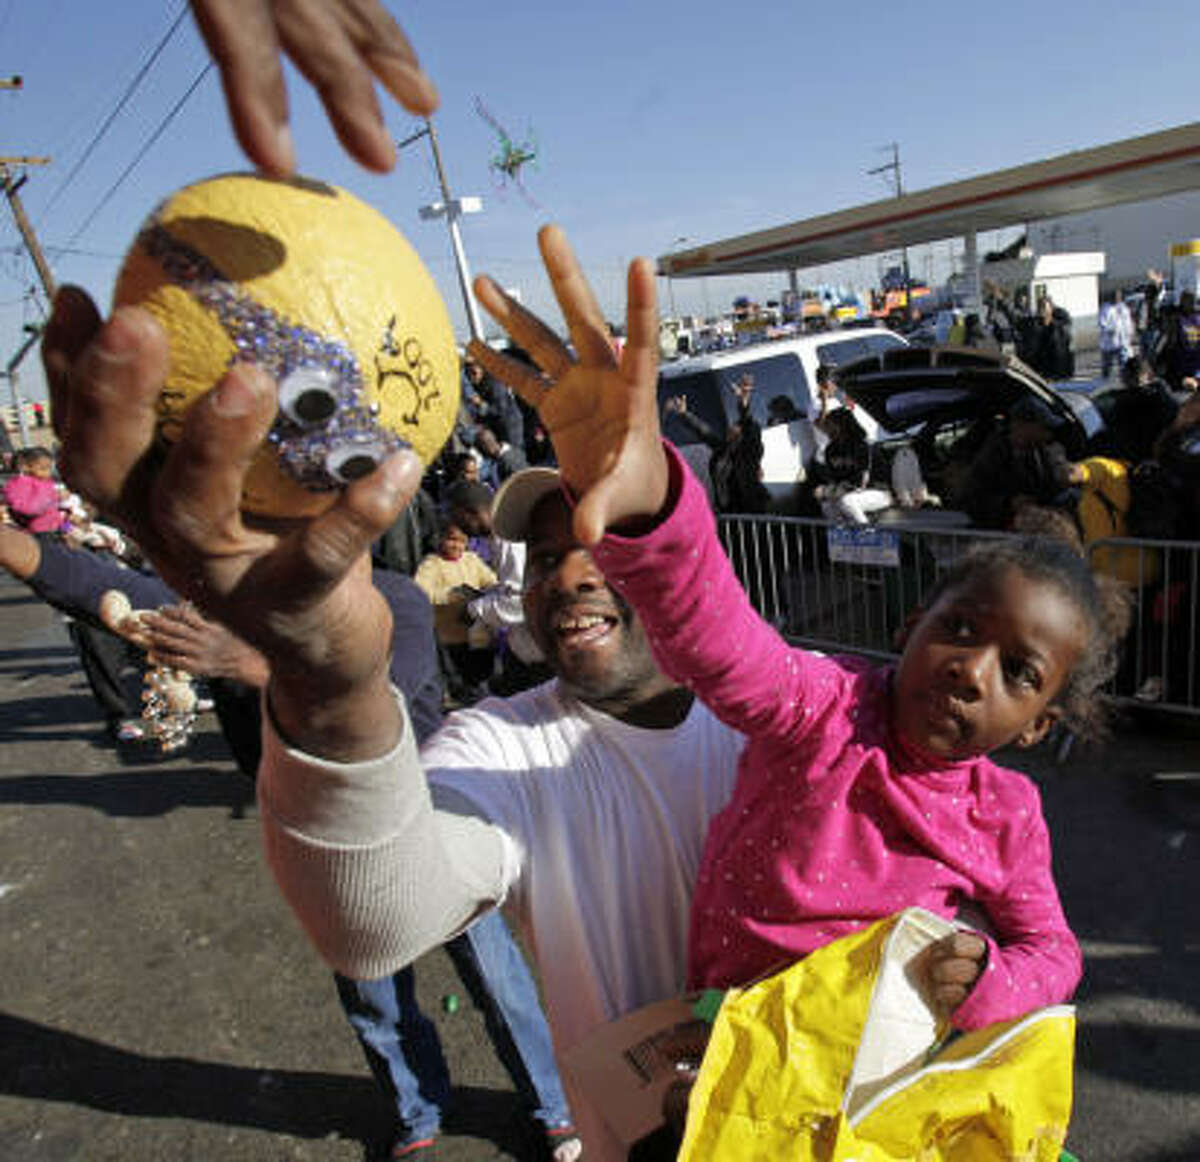 Tayana Otis, 5, from New Orleans, reaches for a famous Zulu coconut during the Zulu parade on Mardi Gras in New Orleans Tuesday, Feb. 24. Carnival revelers were greeted with clear and cool weather for Mardi Gras.